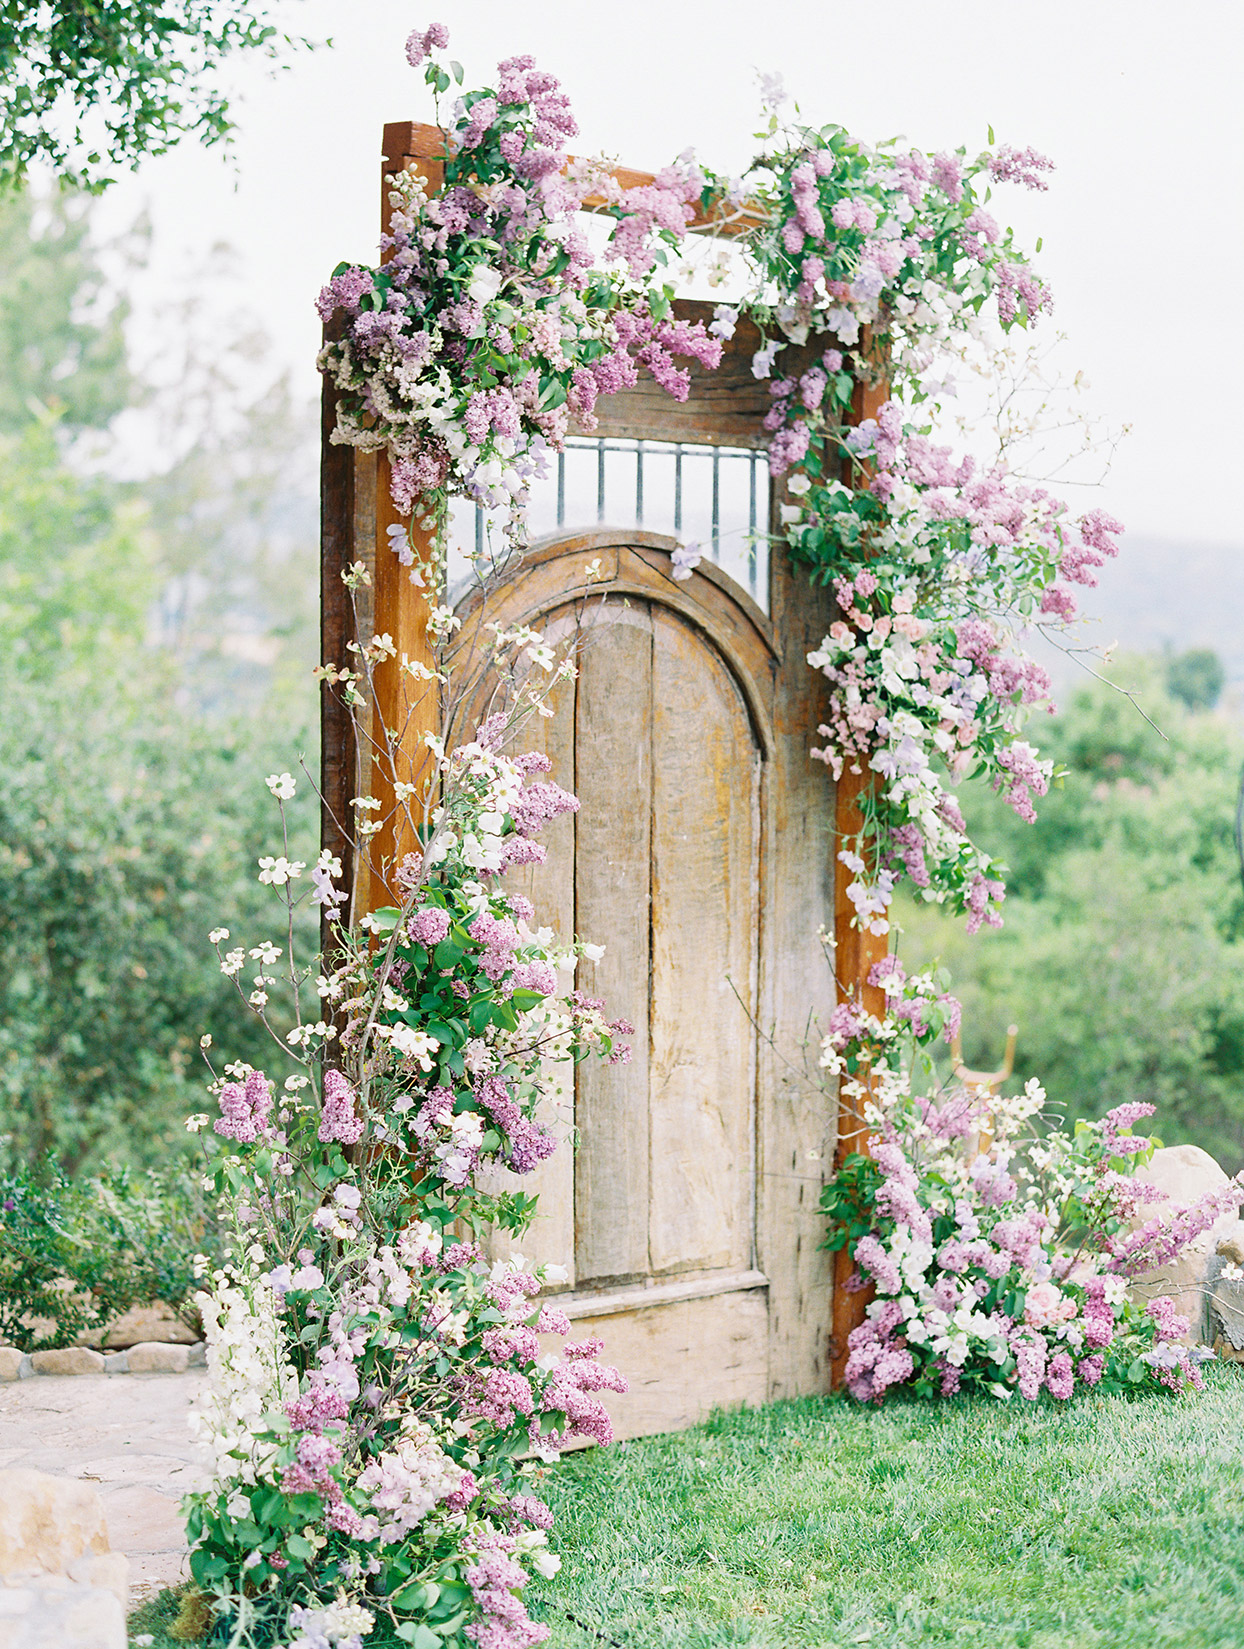 raina salih wedding ceremony door with flowers